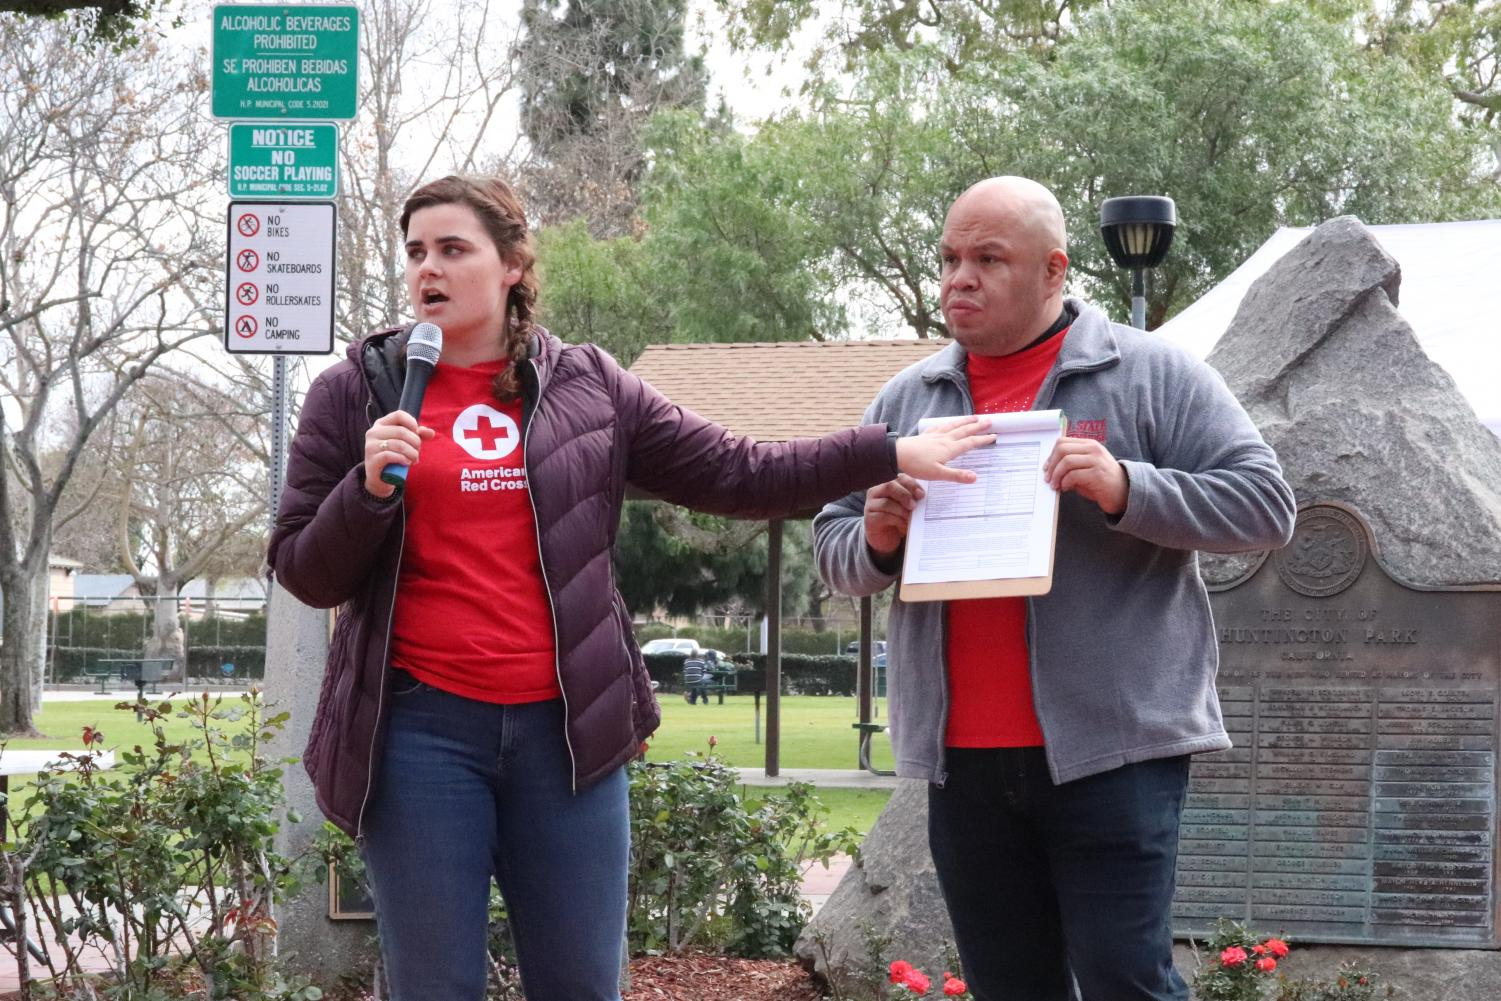 Lydia Hoffman (left) and Nelson Cox (right) instruct volunteers before they install fire alarms in homes. Photo by Joshua Letona.